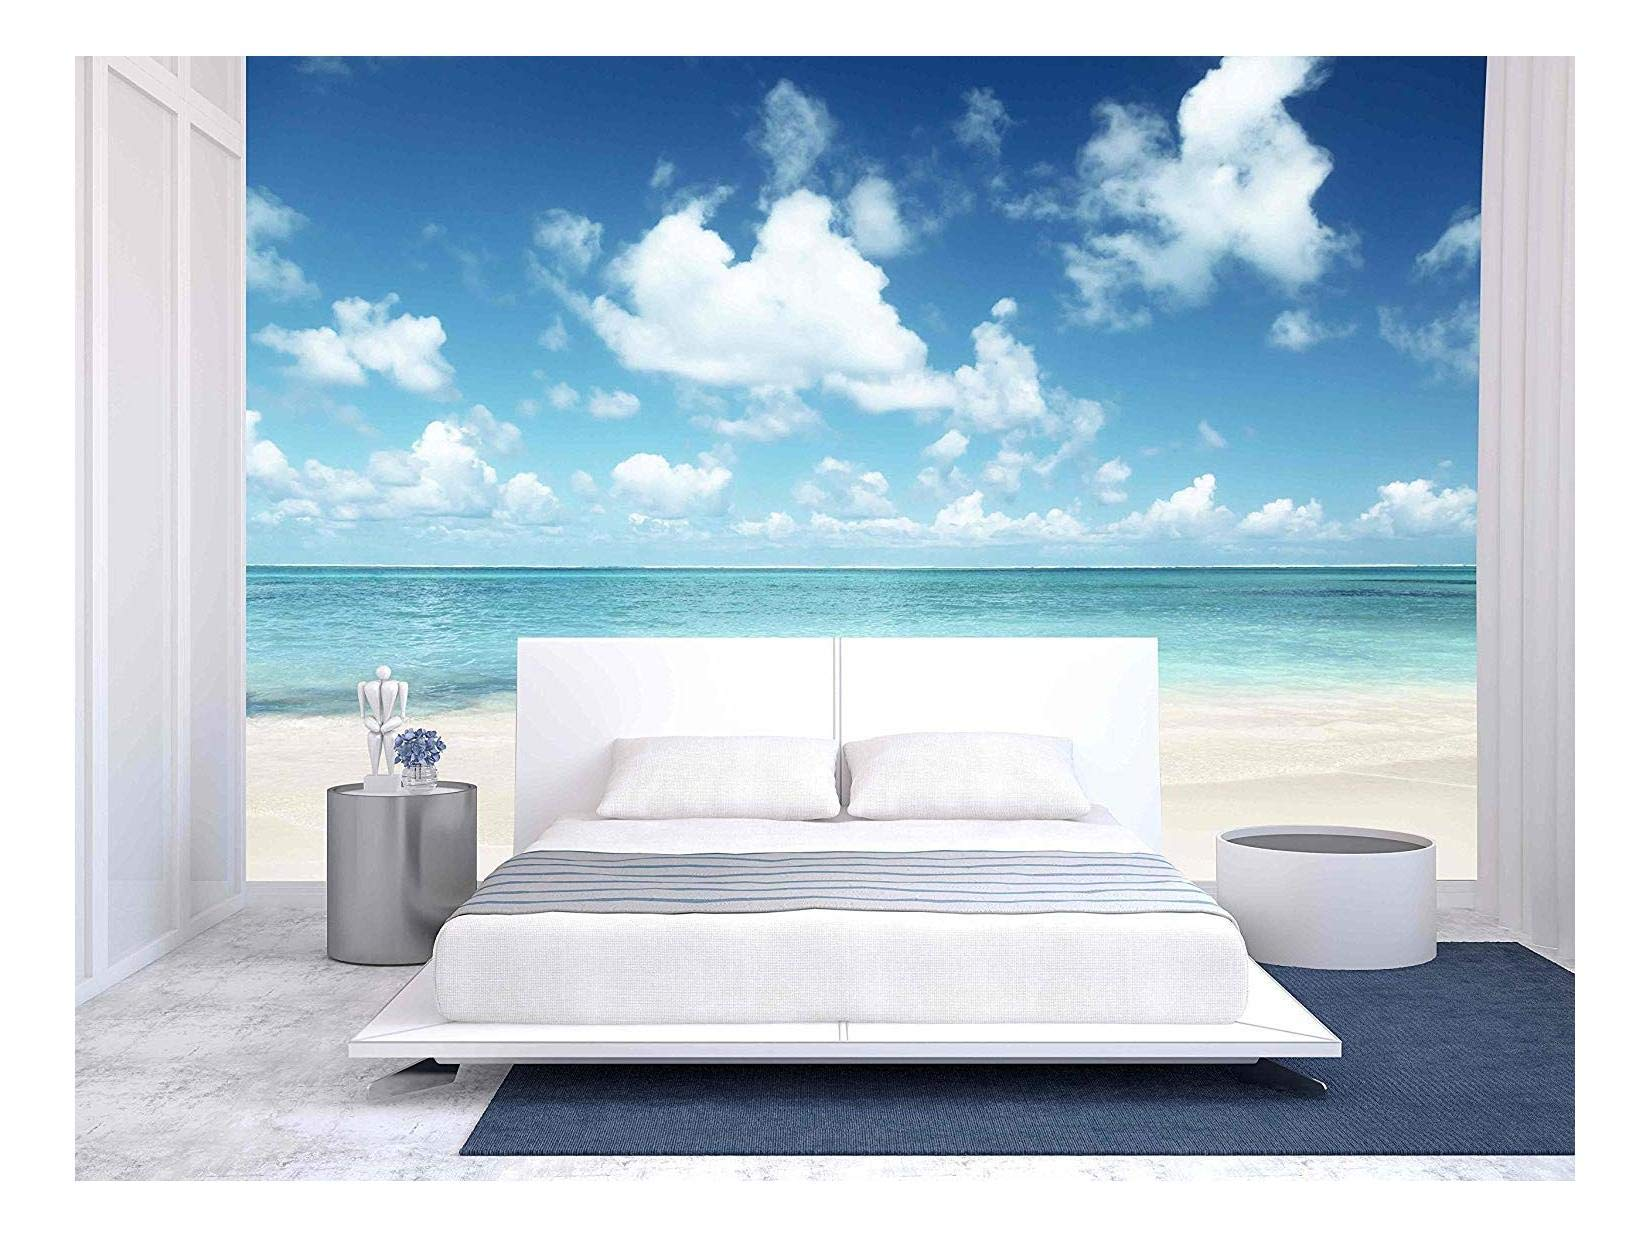 wall26 - Sand of Beach Caribbean Sea - Removable Wall Mural | Self-Adhesive Large Wallpaper - 66x96 inches by wall26